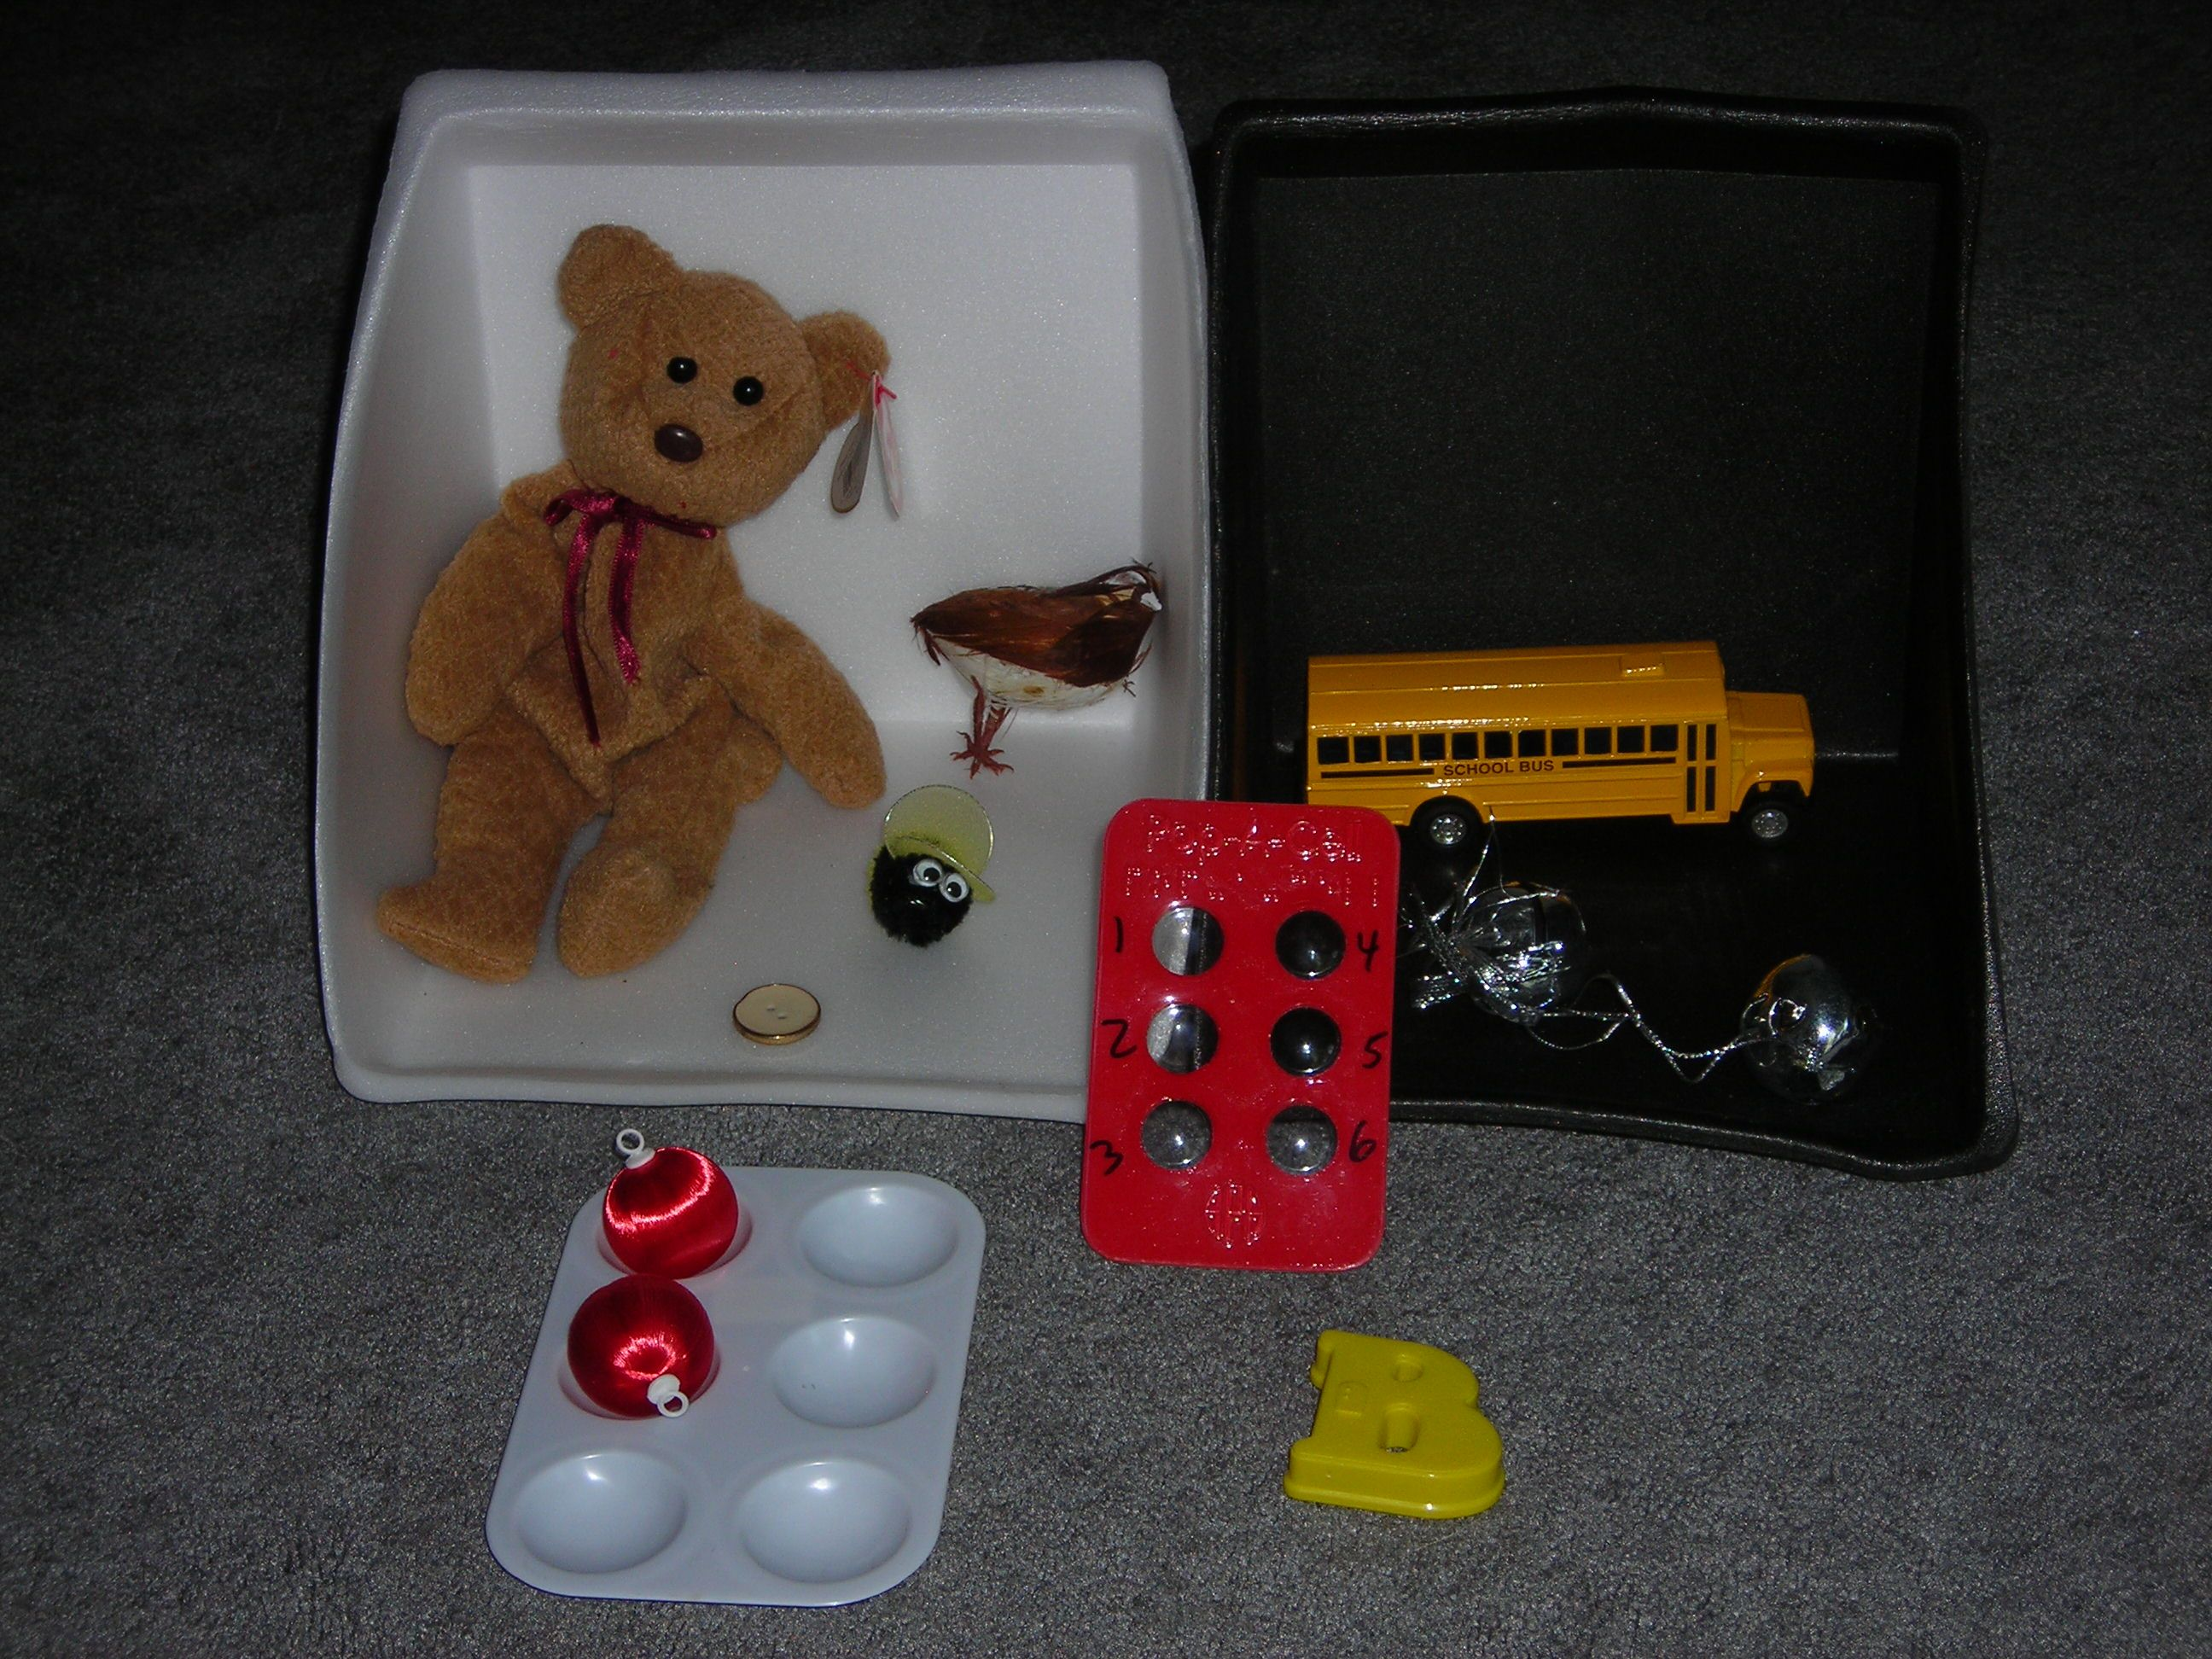 Beginning Braille Activity For Blind Students Using Real Objects To Teach The